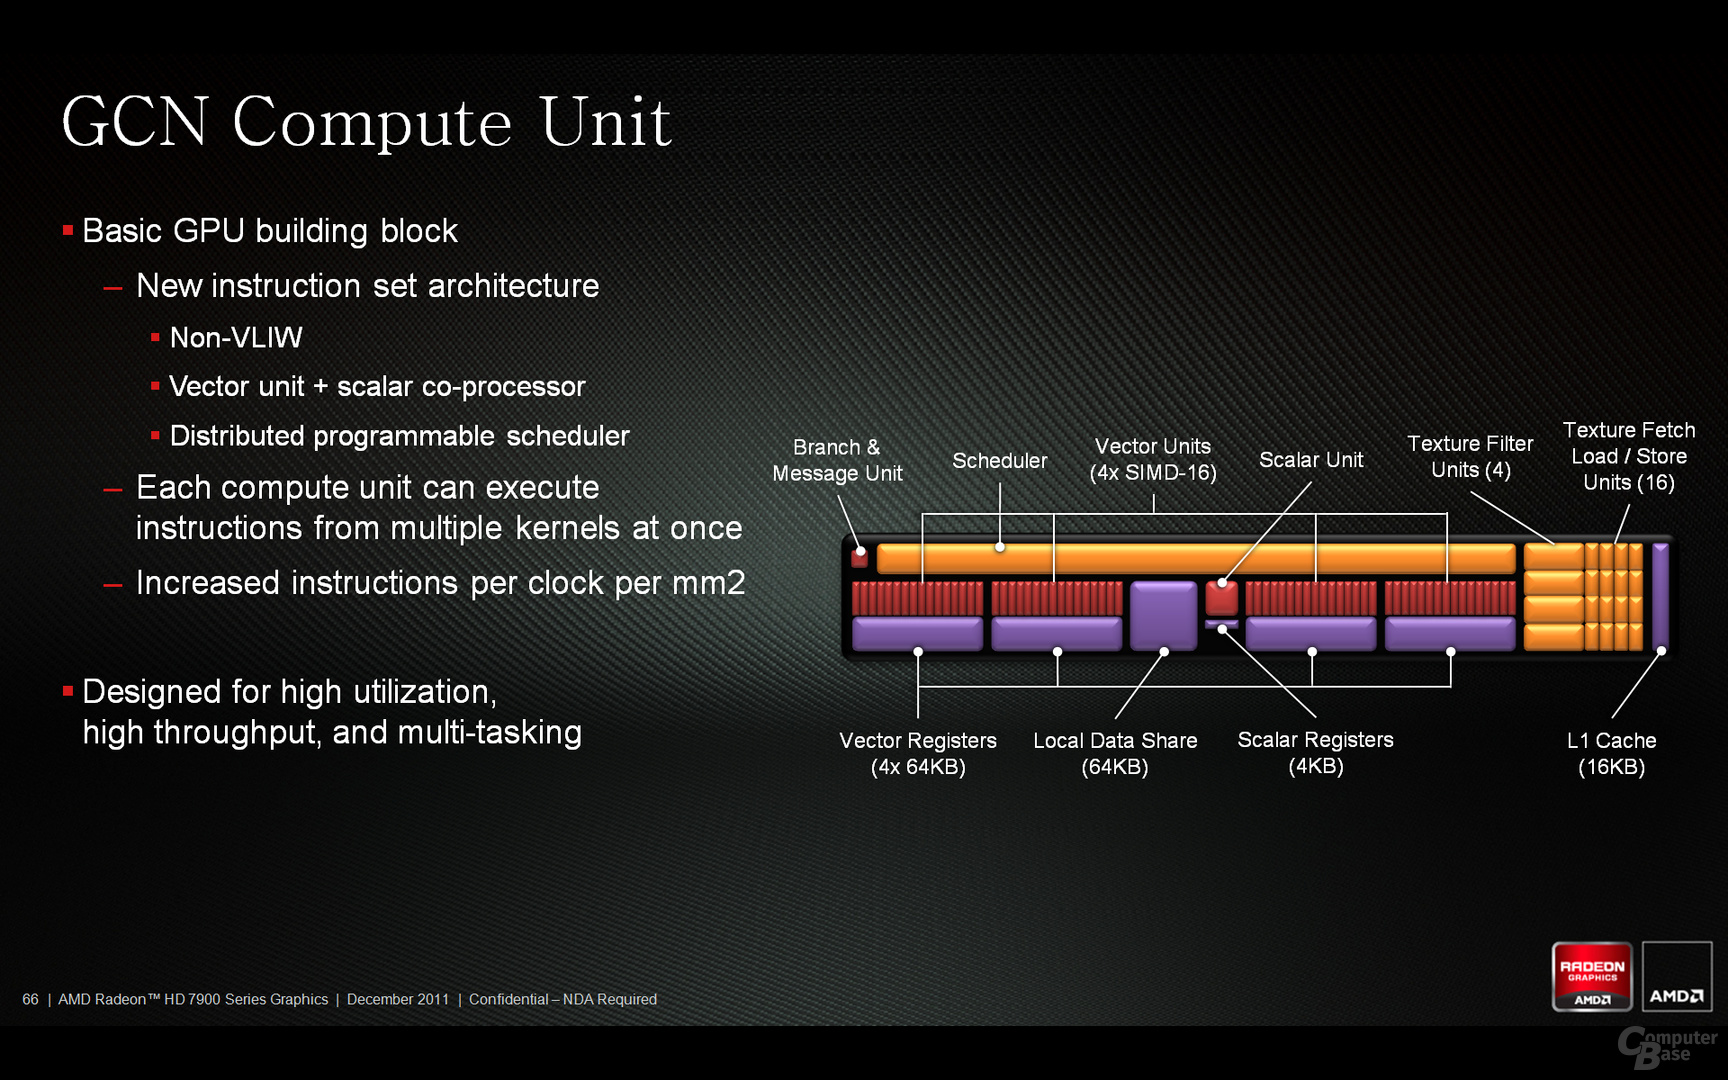 Architektur-Design Compute Unit